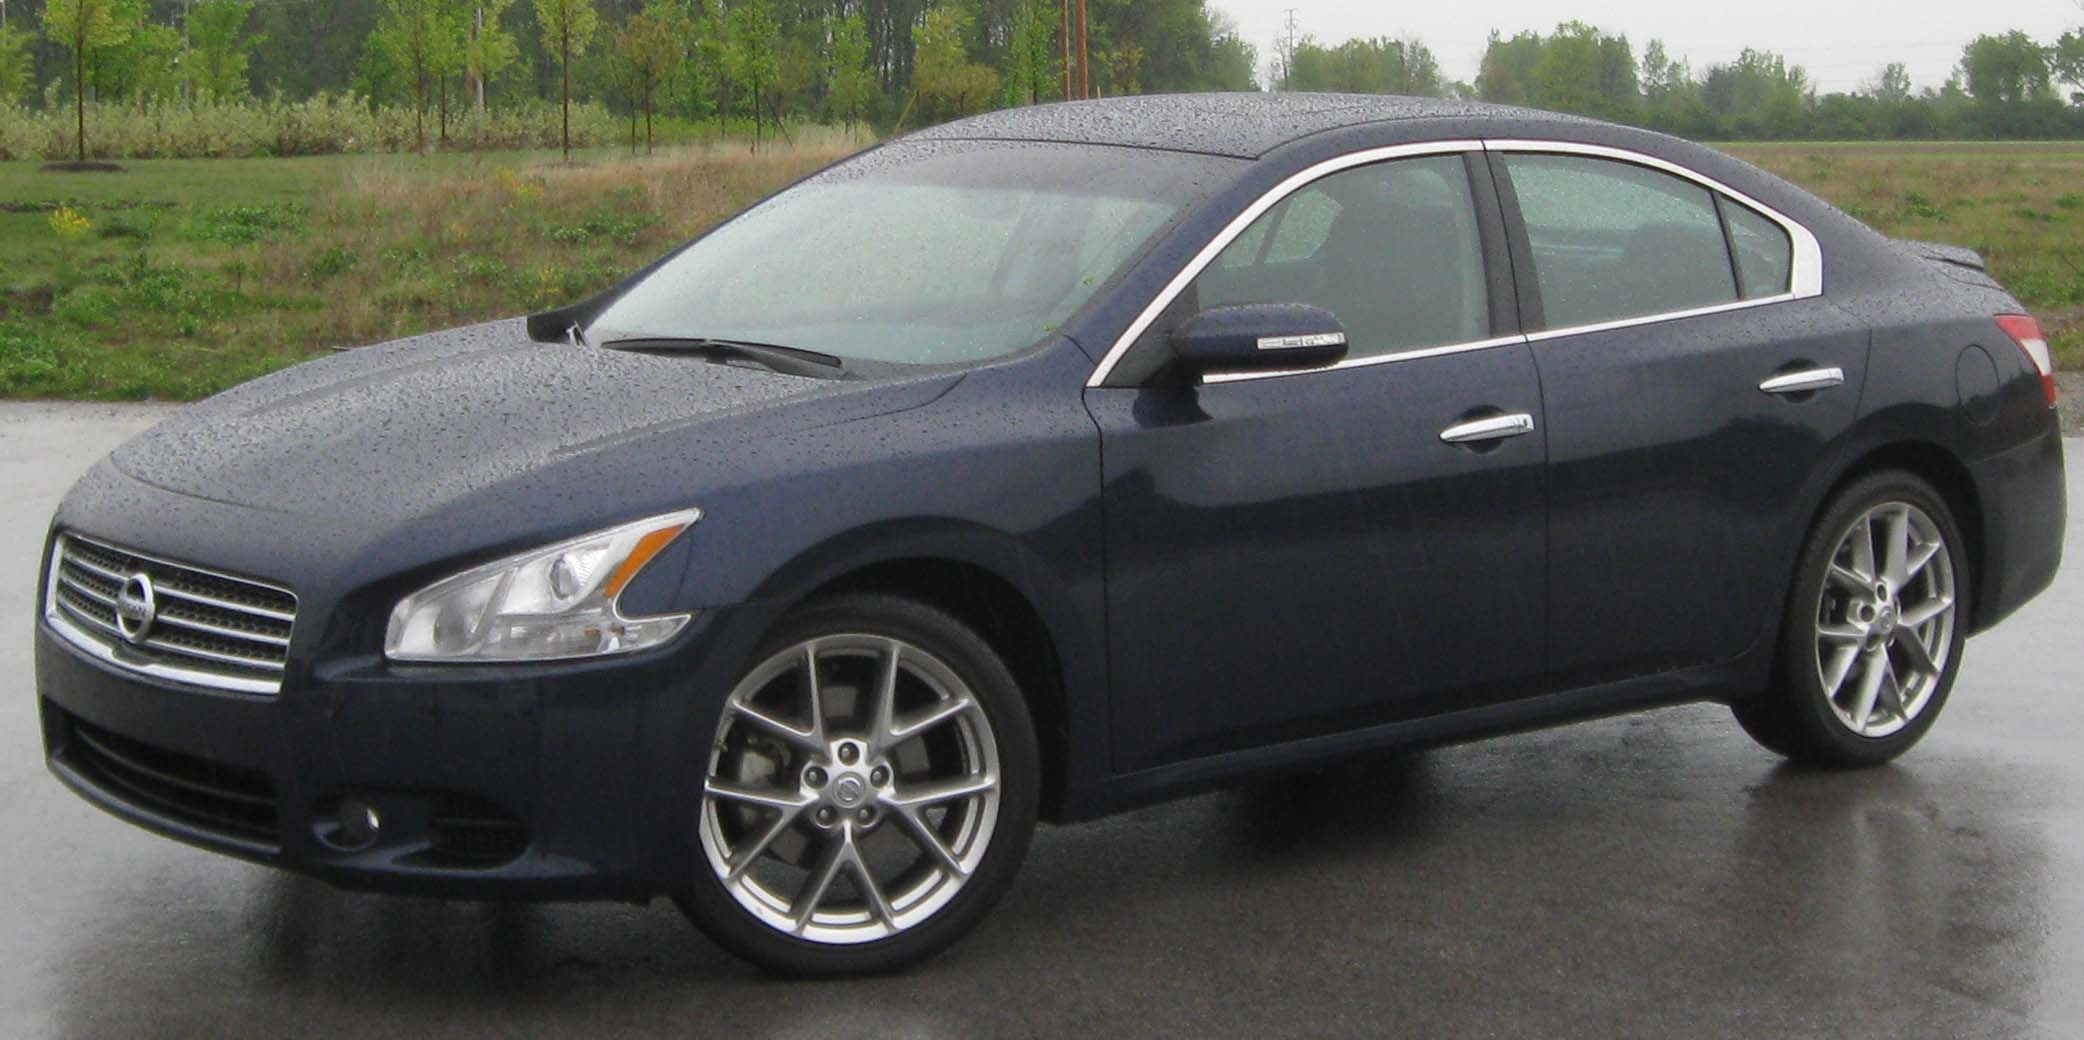 Pictures of nissan maxima #2